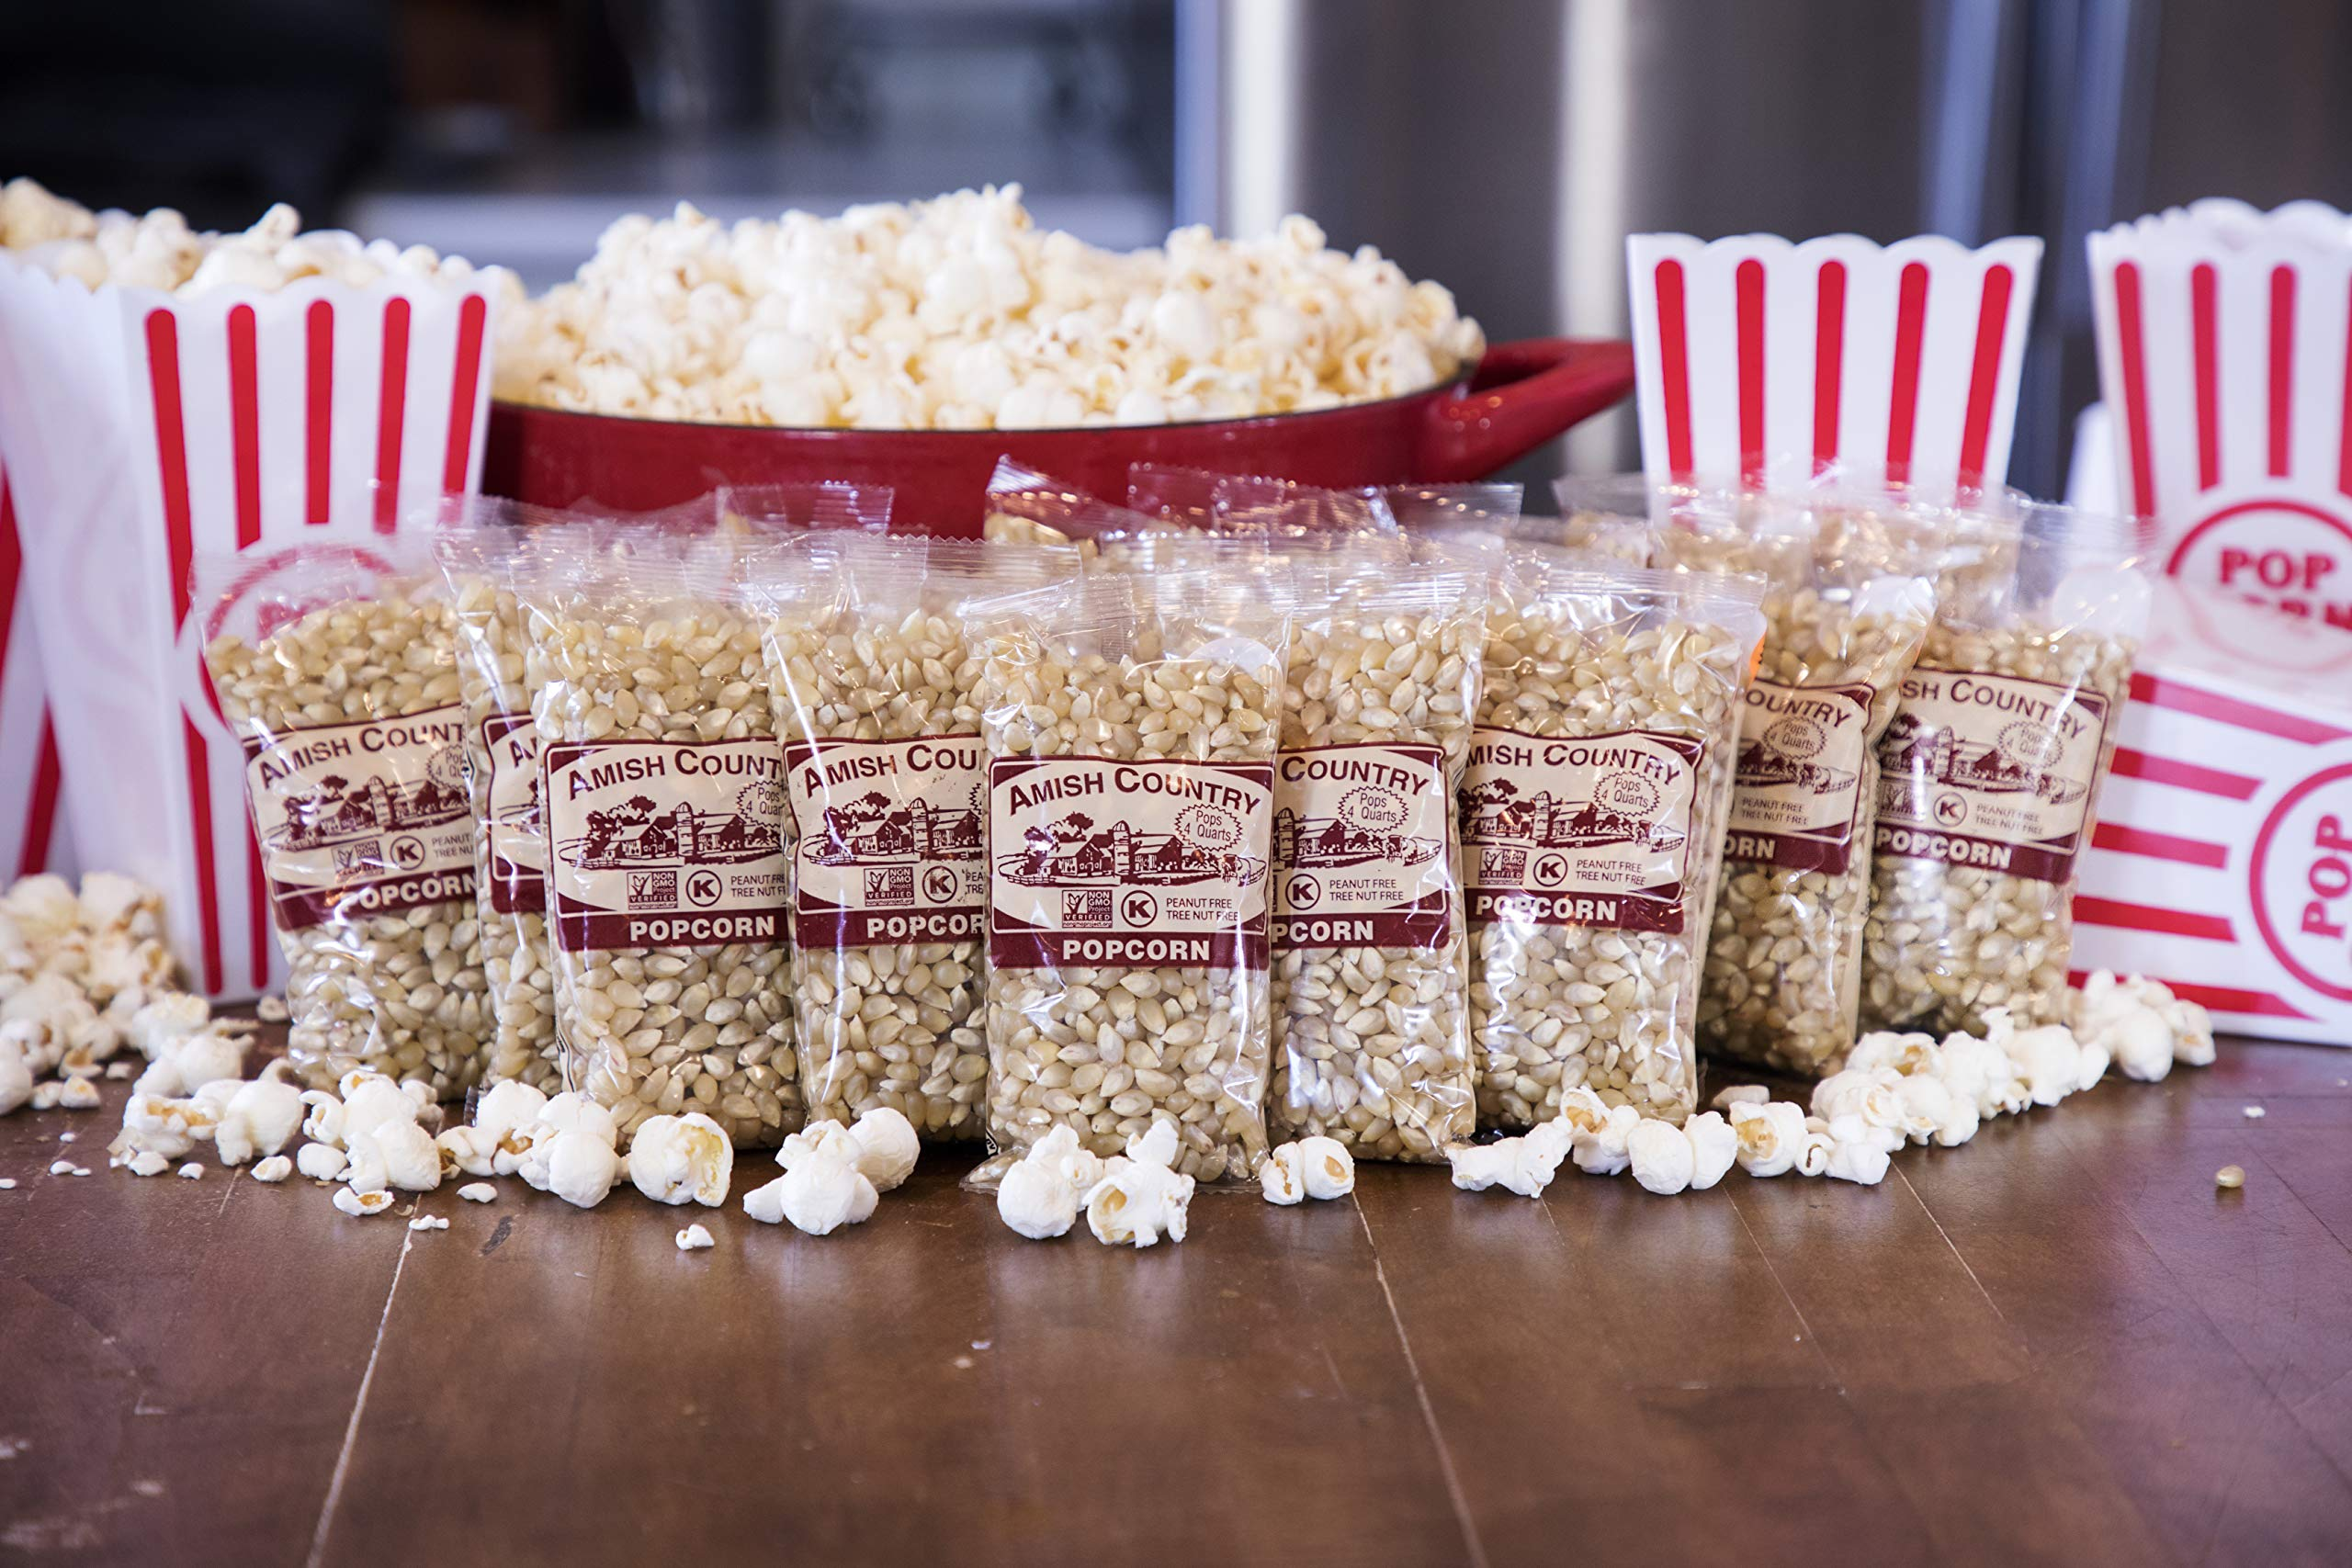 Amish Country Popcorn - Medium White Popcorn (4 Ounce - 24 Pack) Bags - Old Fashioned, Non GMO, and Gluten Free - with Recipe Guide by Amish Country Popcorn (Image #3)